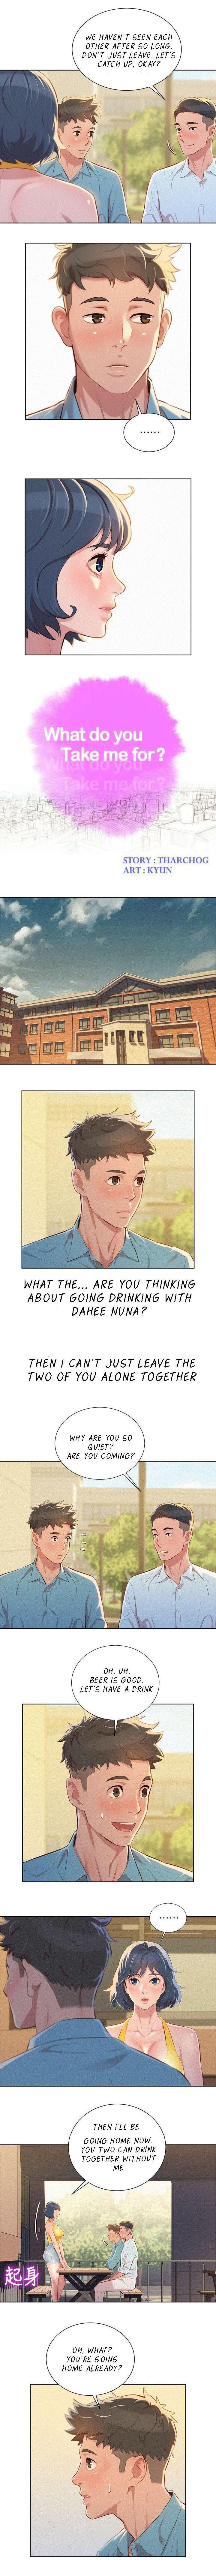 What do you Take me For? Ch.70/? 404